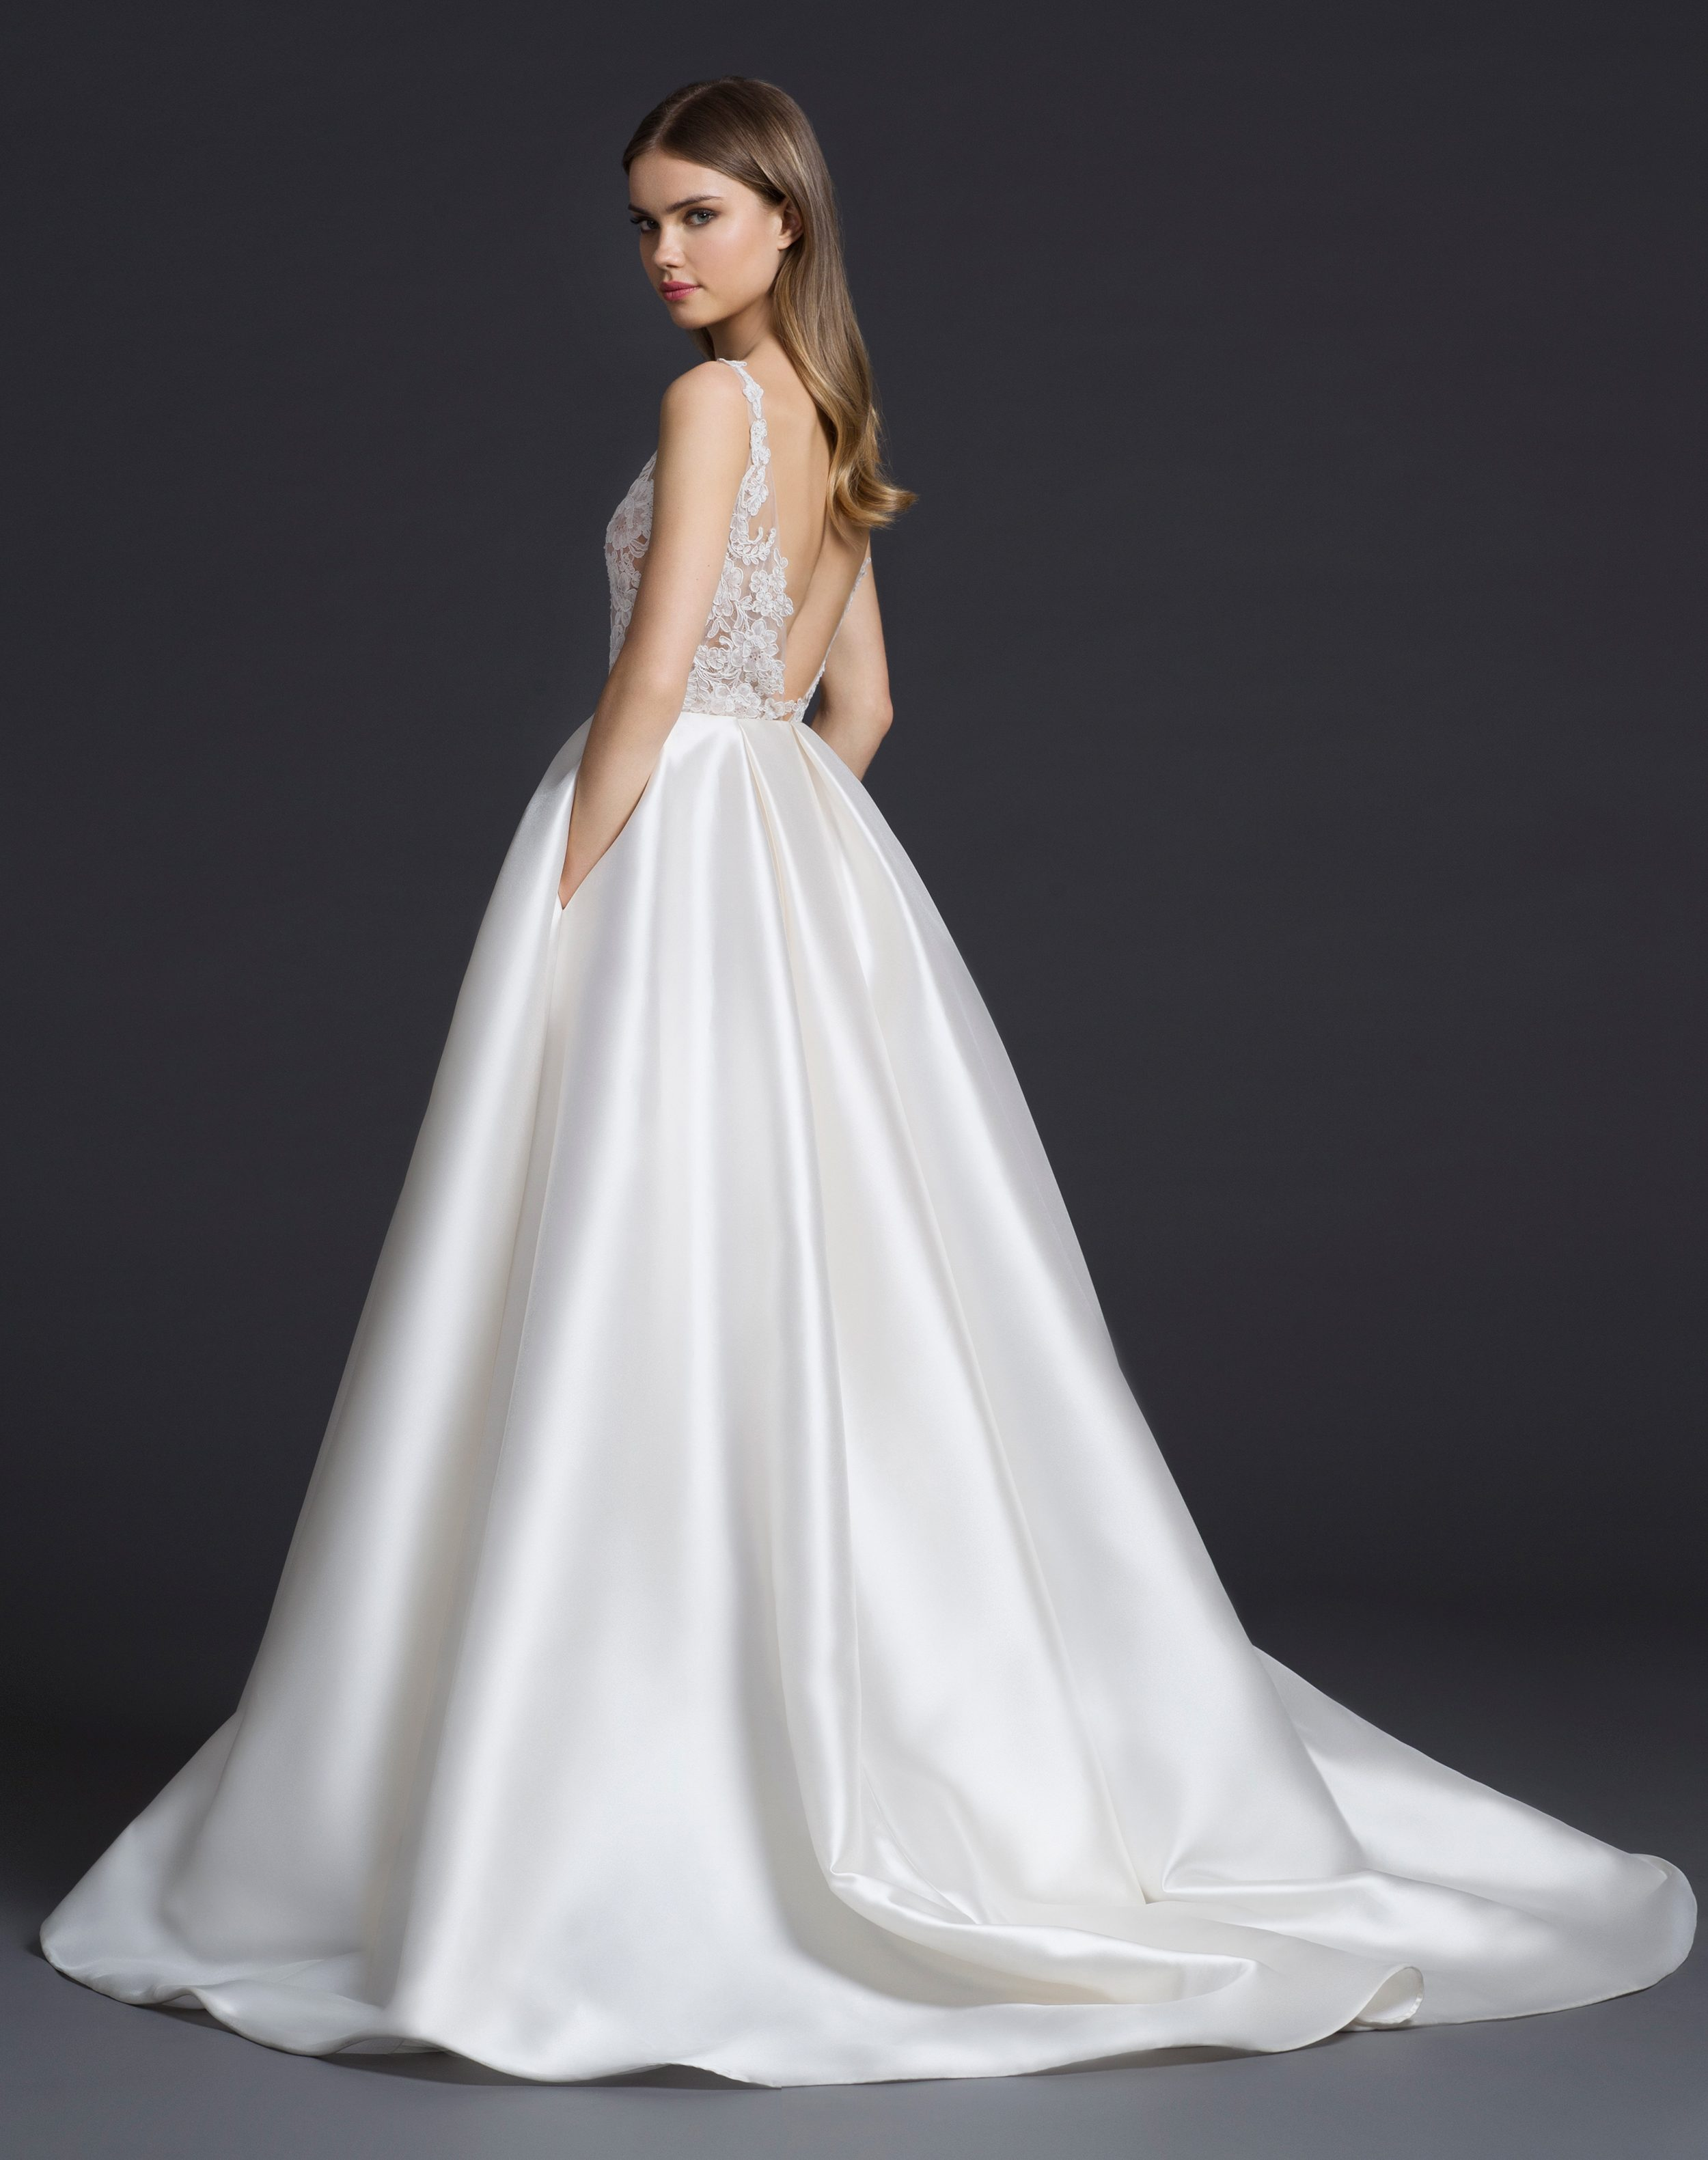 New wedding gowns from lazaro arrive at stardust stardust celebrations view junglespirit Gallery